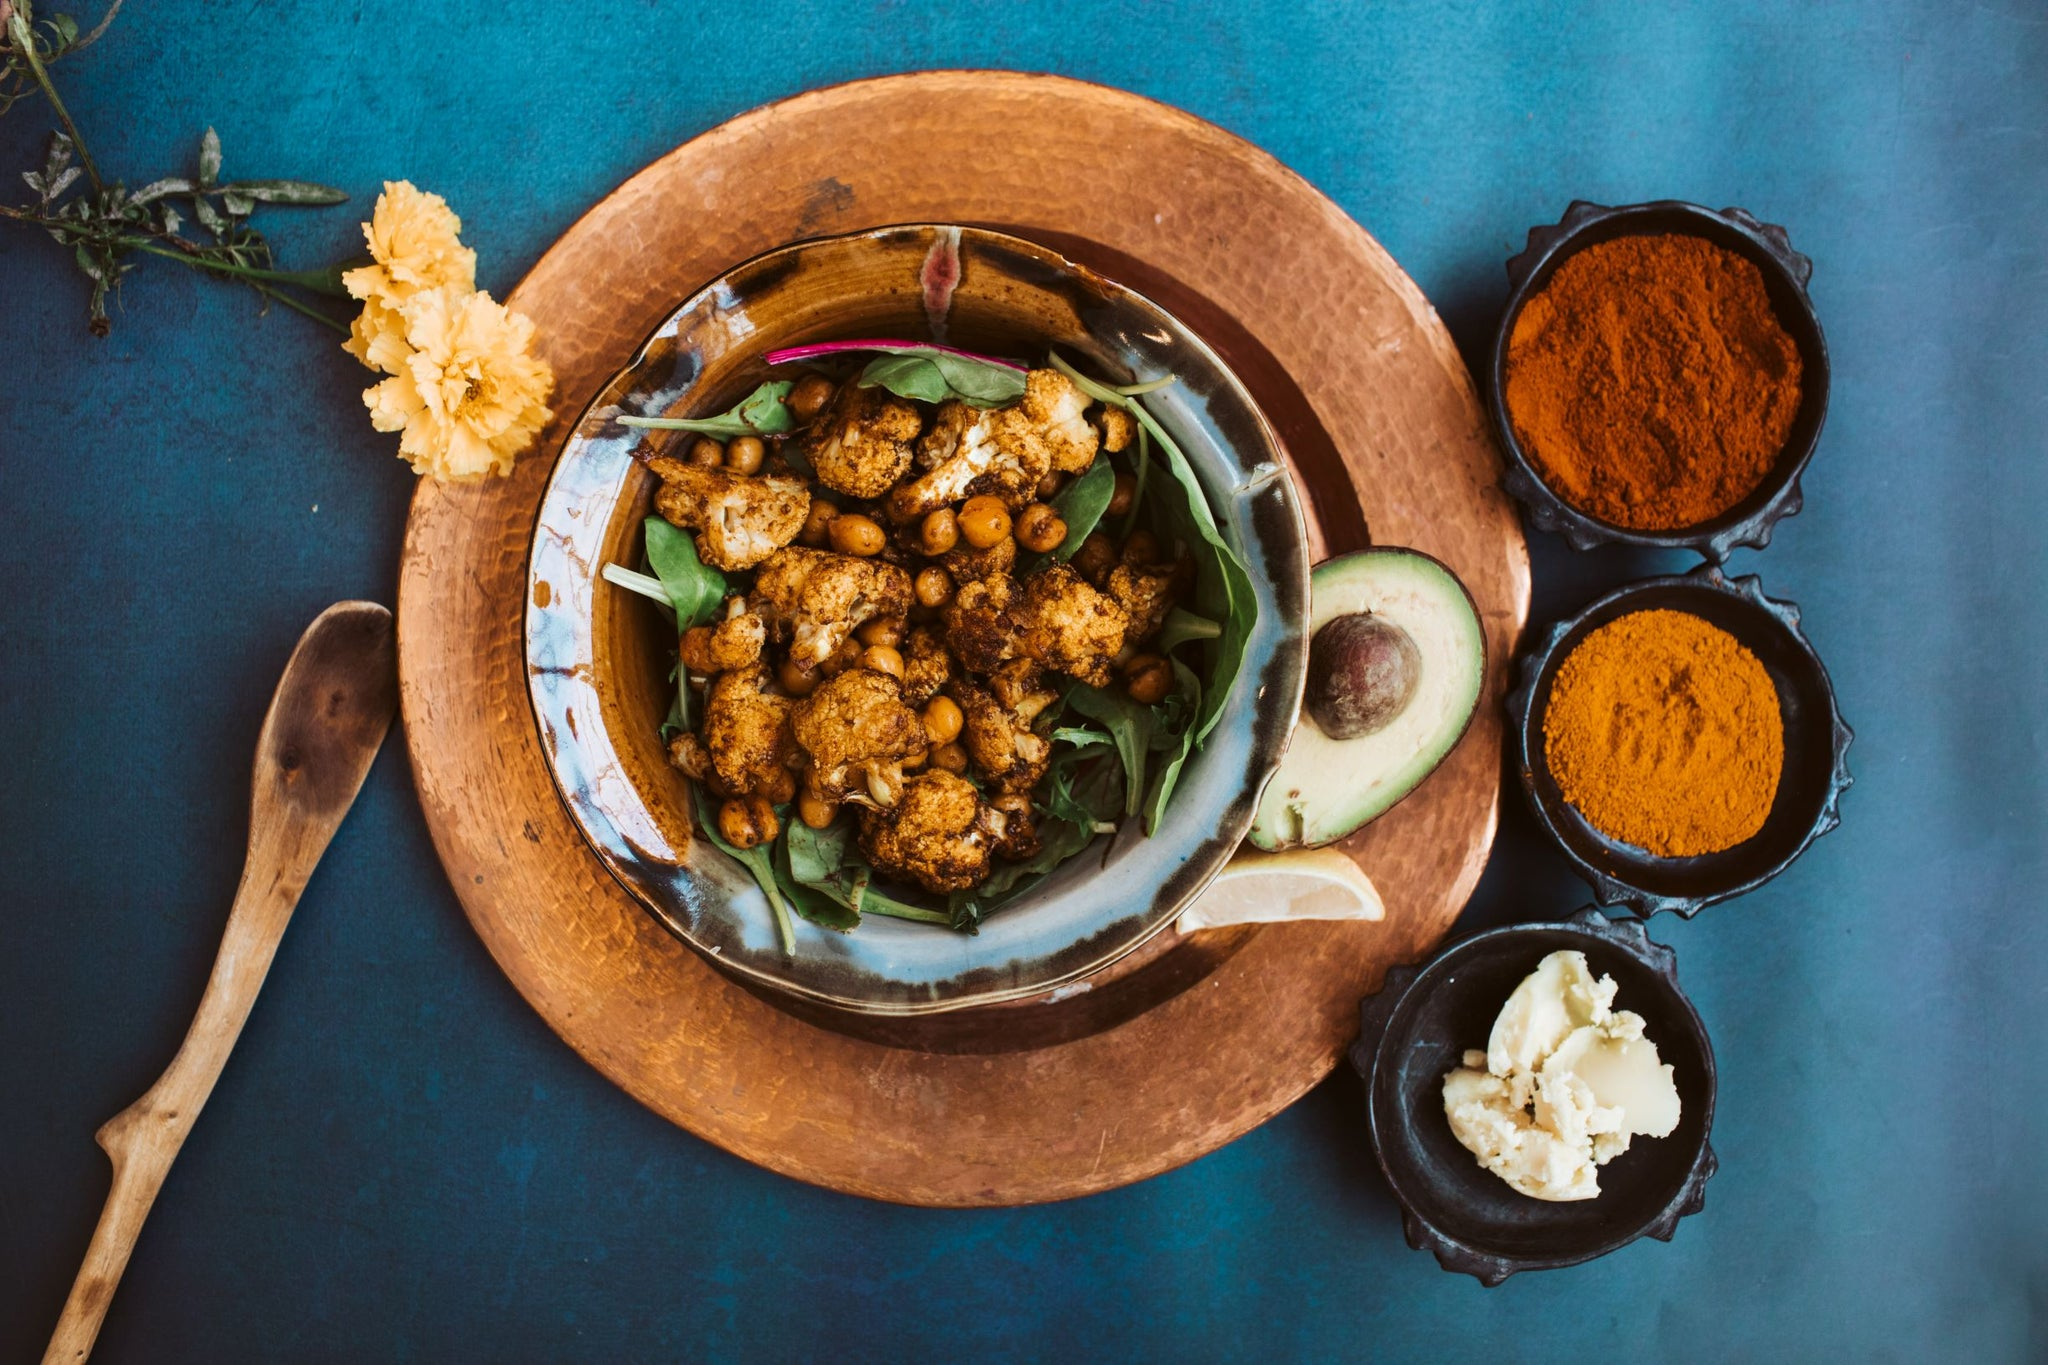 KIT: Roasted Cauliflower and Chickpea in Ethiopian Spices